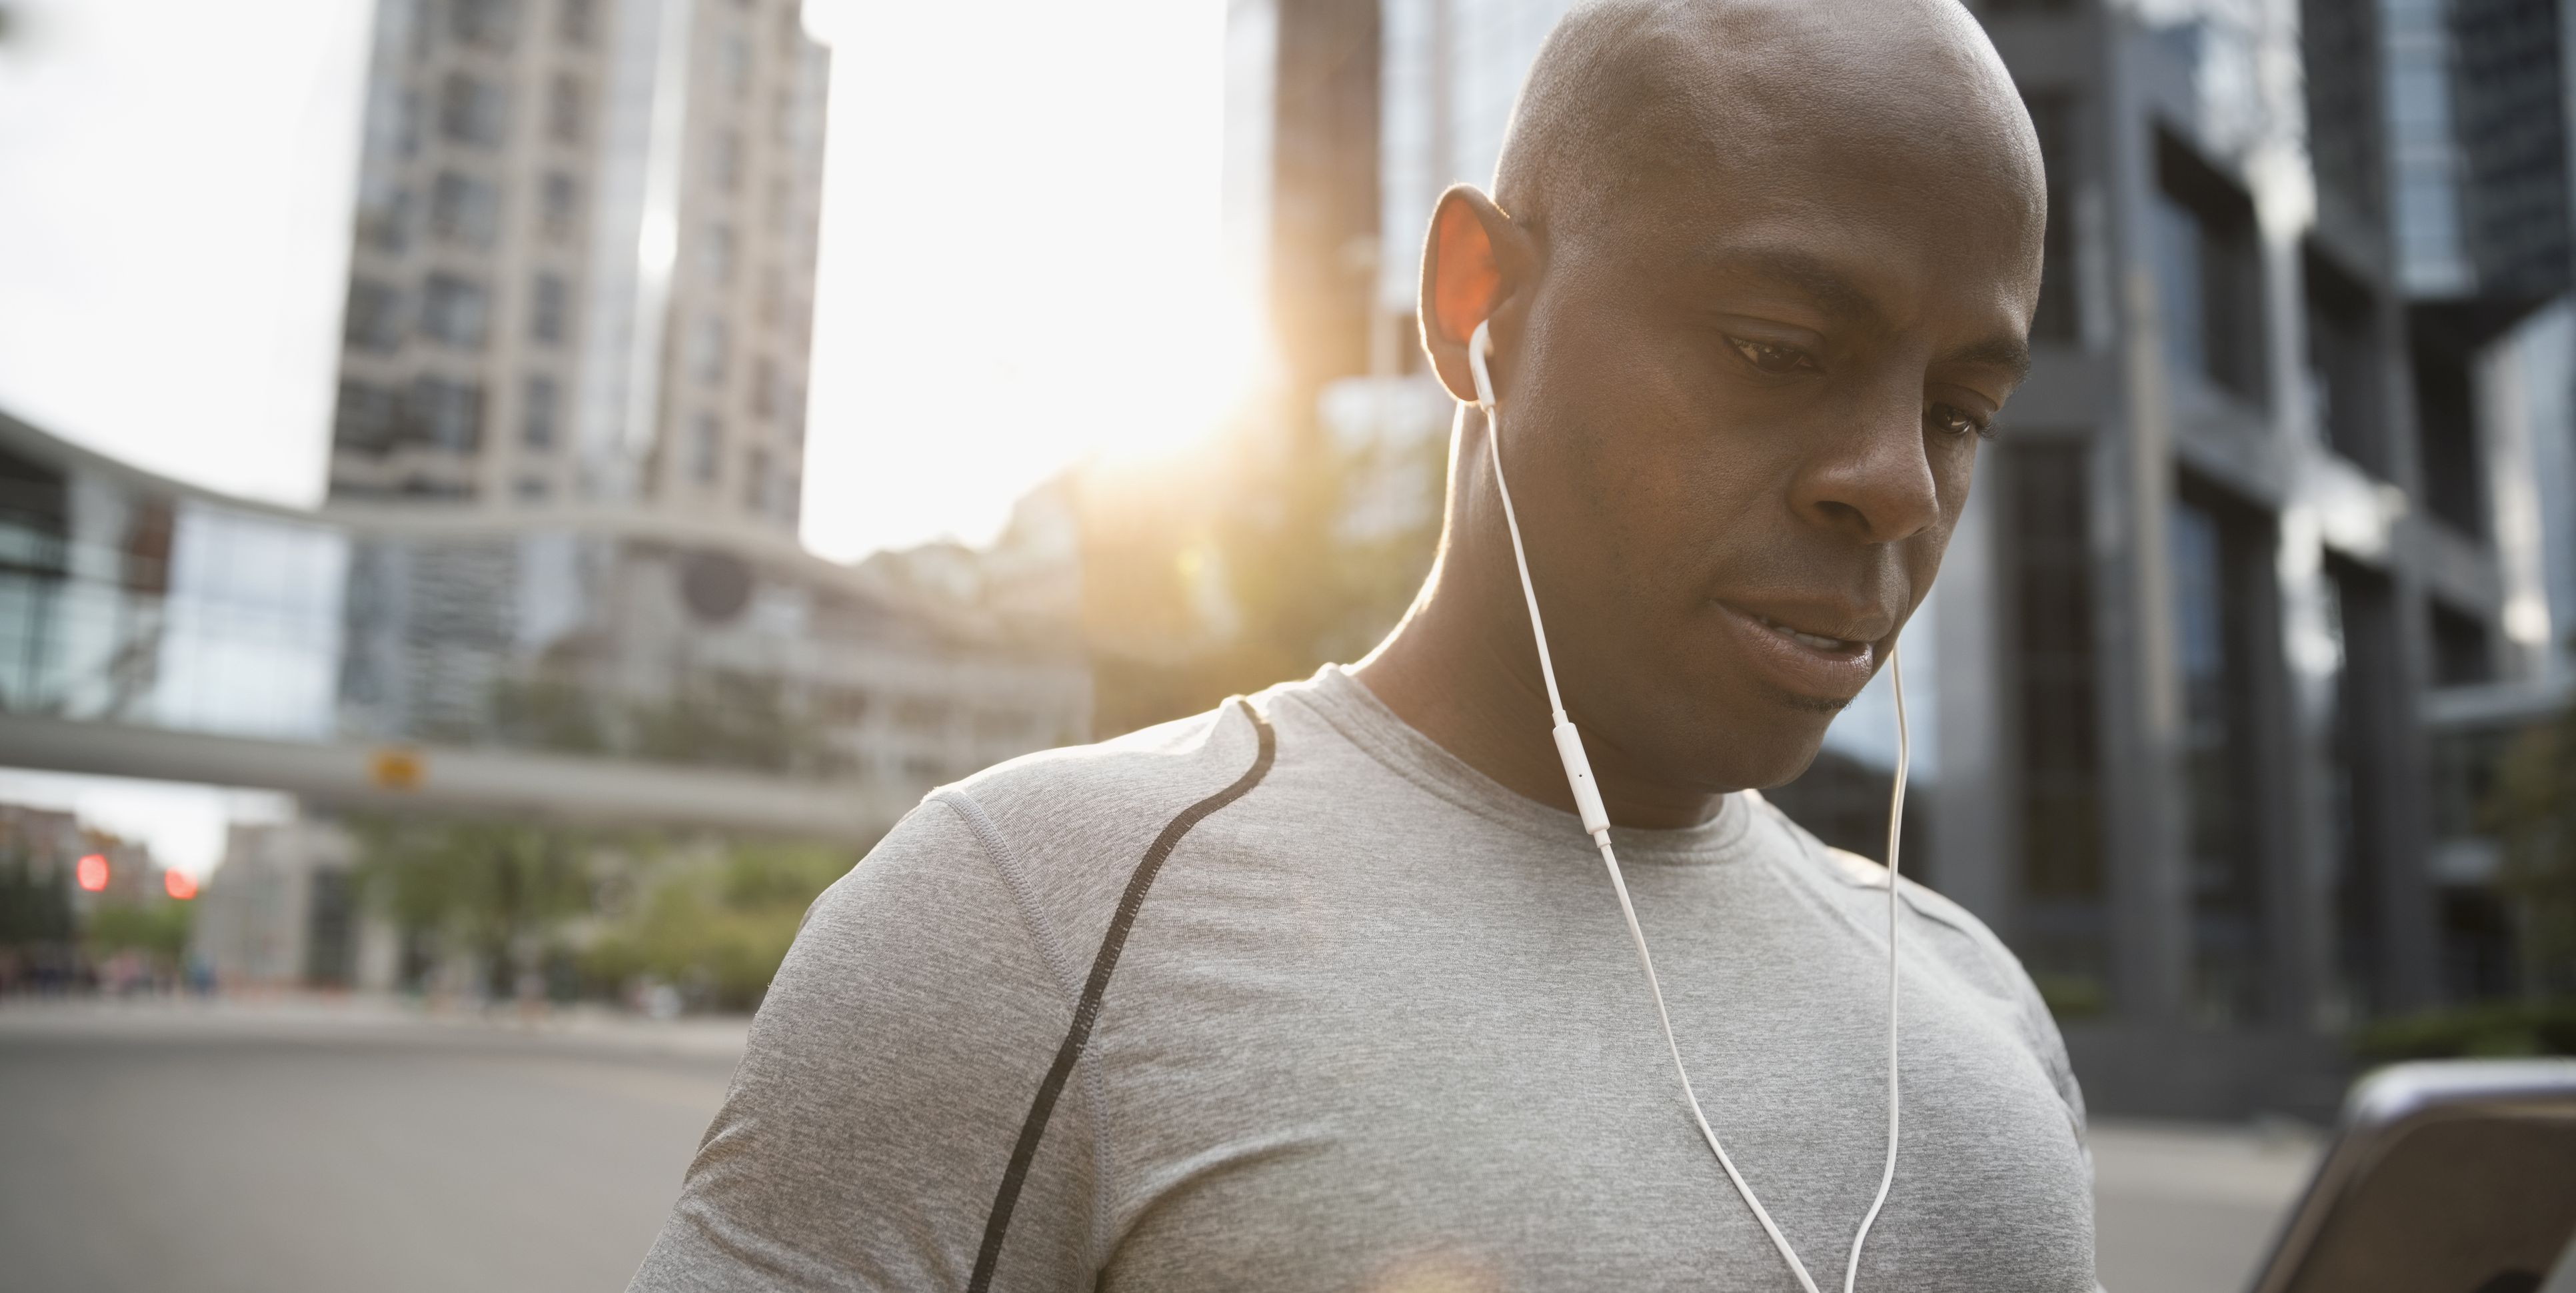 10 Best Apps for Your Overall Health